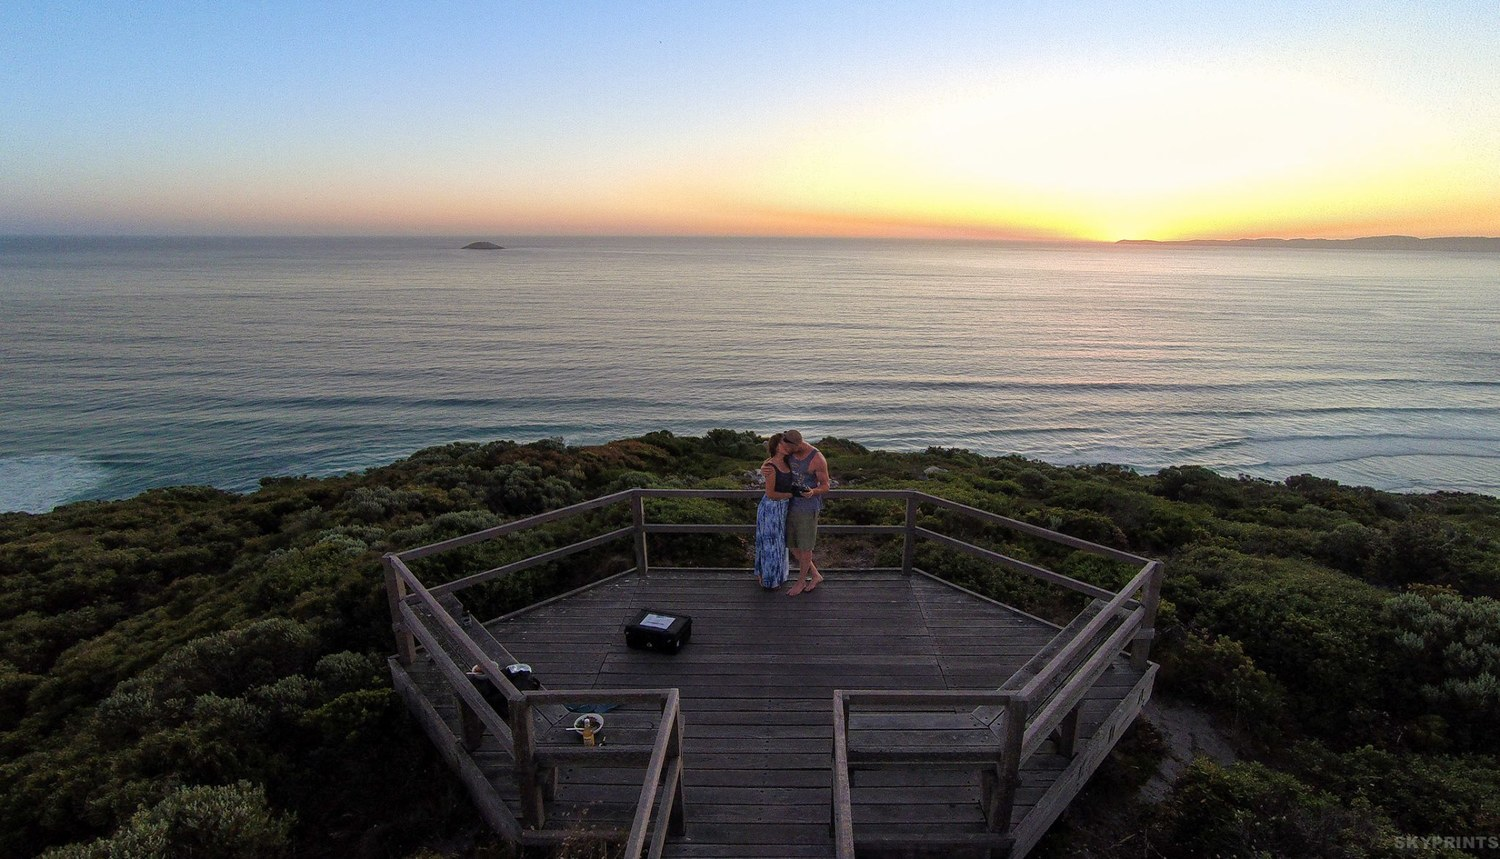 A romantic Sunset at The Sandpatch Albany Western Australia. Image Credit:  SKYPRINTS